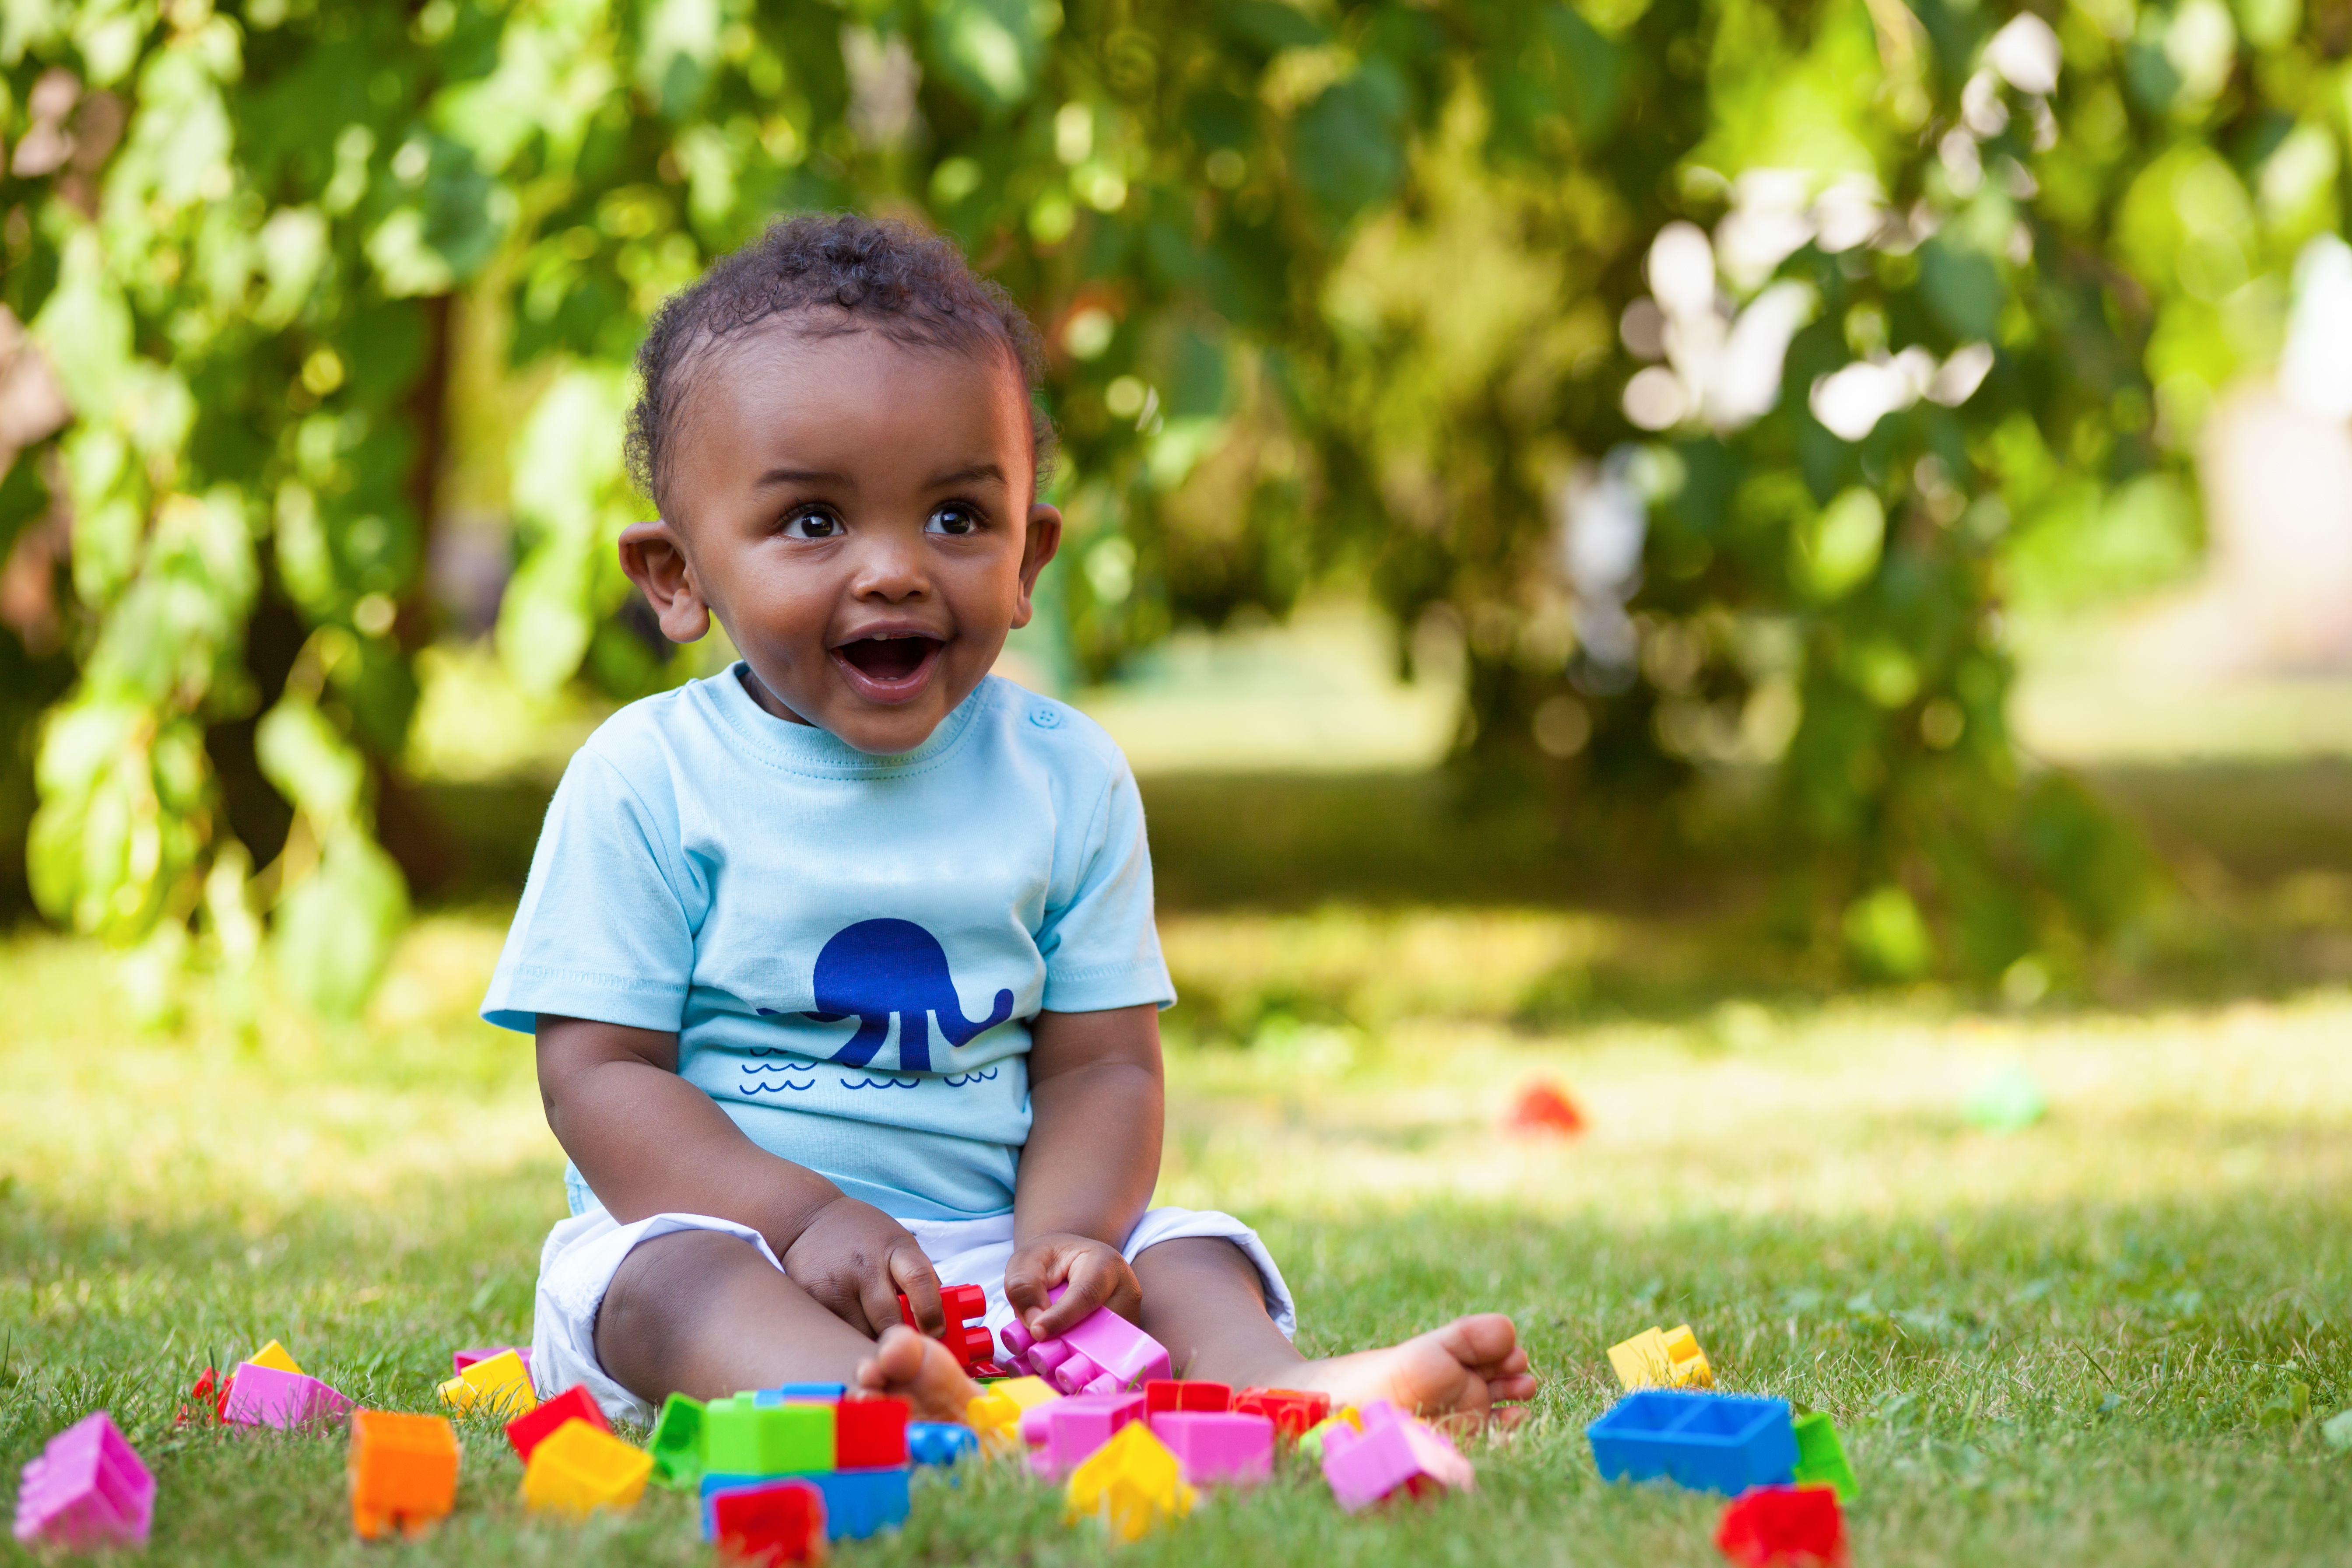 Smiling infant playing outside with blocks